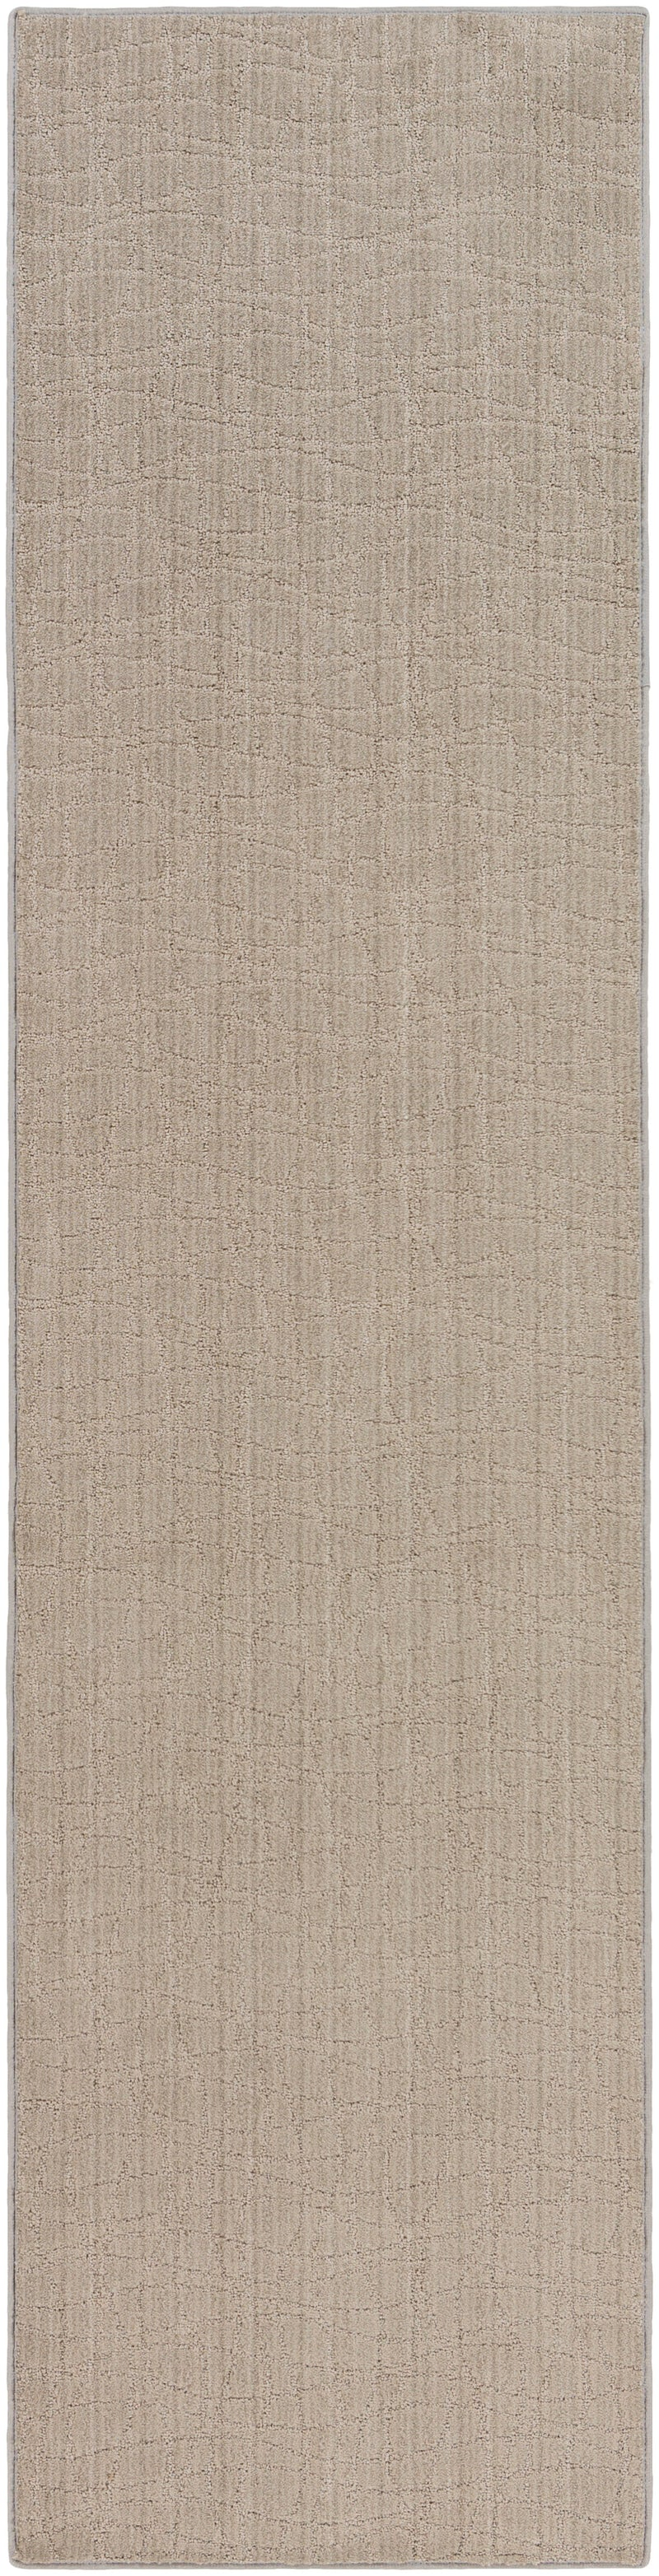 "Nolen NOL-1007 6"" Swatch Made to Order Rugs"